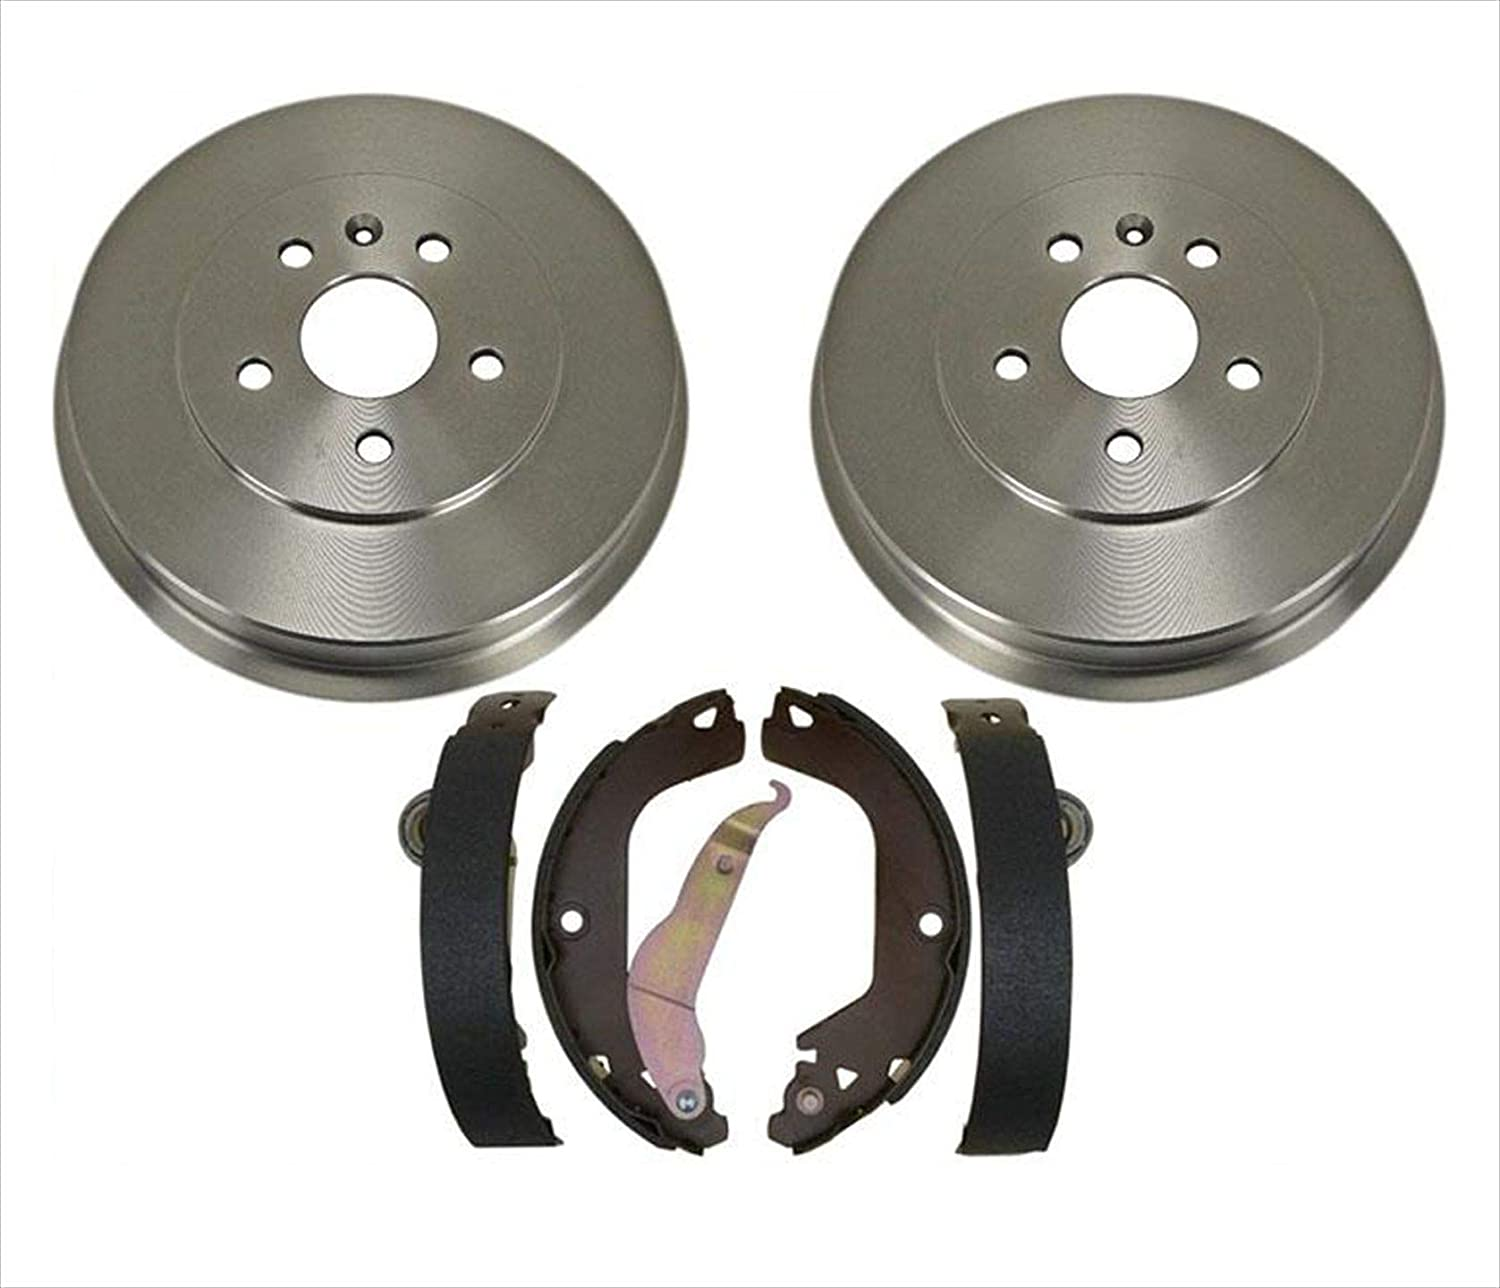 Both Left and Right 2014 For Chevrolet Cruze Rear Drum Brake Shoes Set with 2 Years Manufacturer Warranty